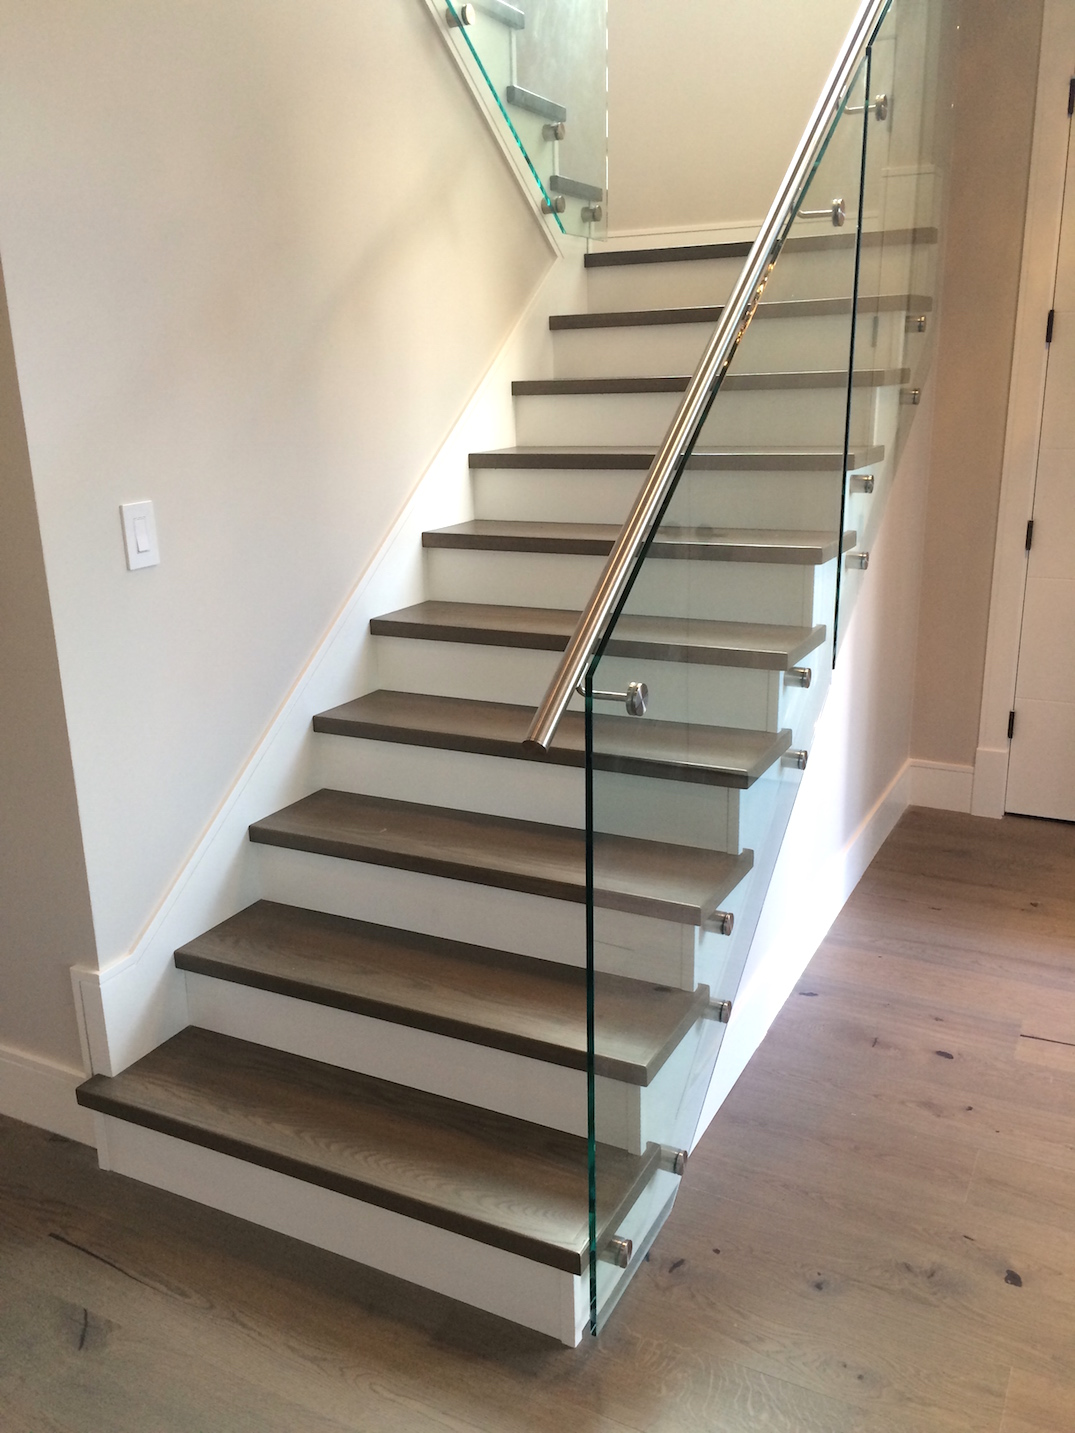 Hardwood isntallation oncurved staircase